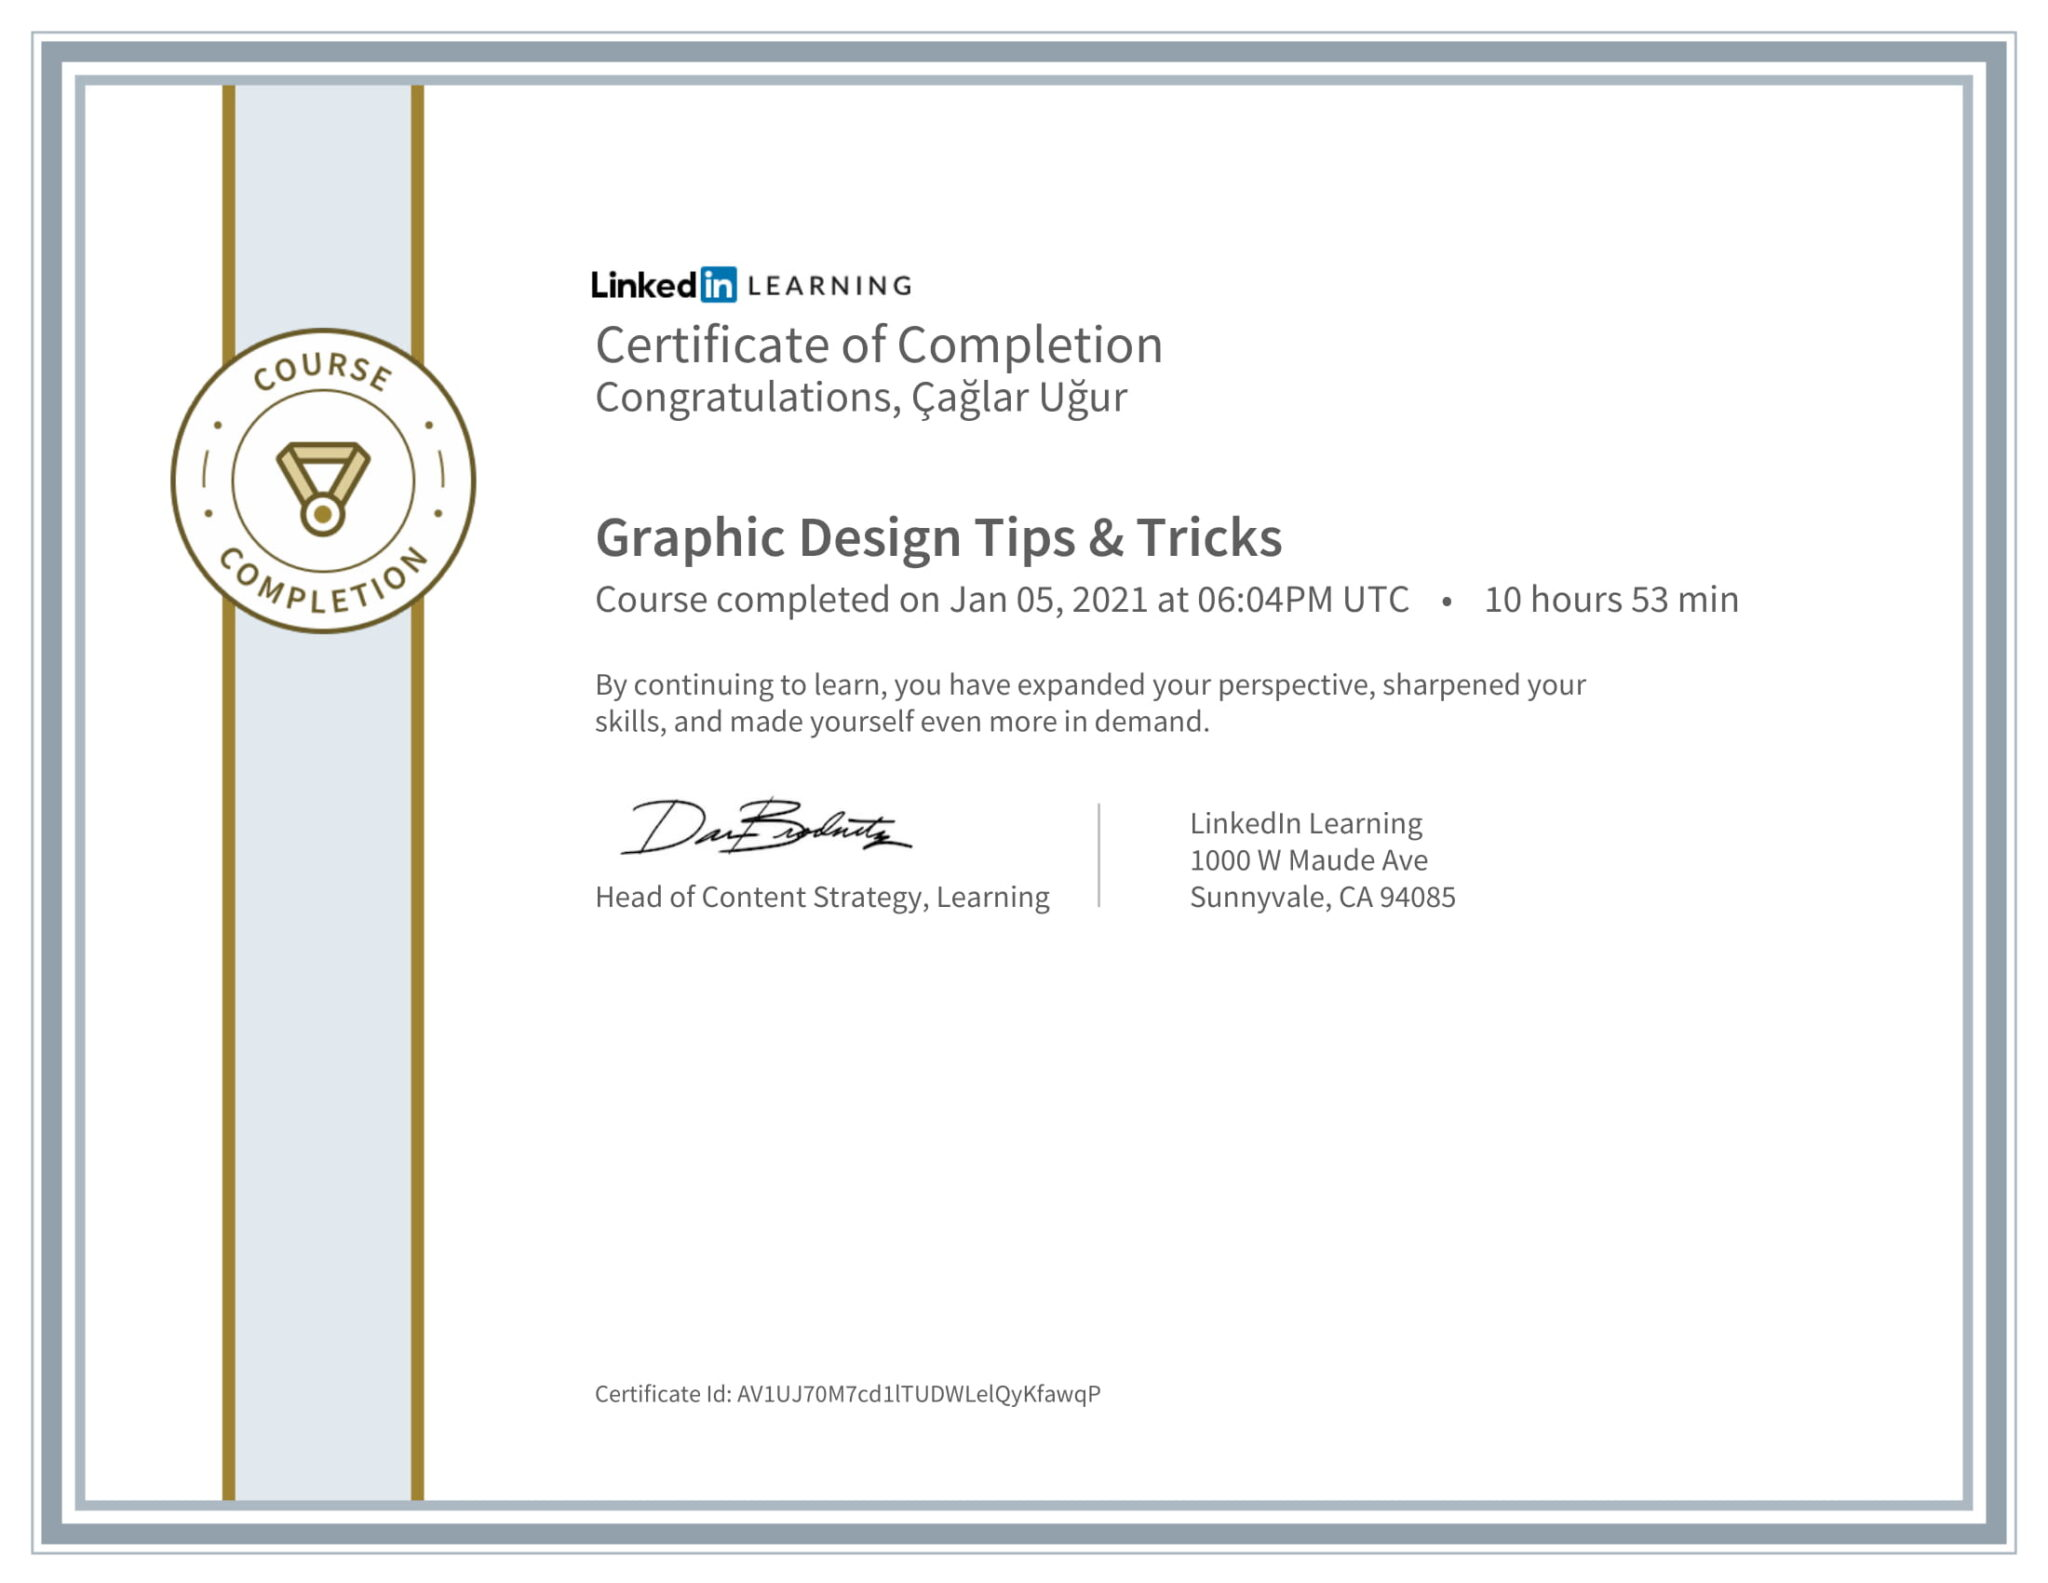 Linkedin JohnMcWade Graphic Design Certificate